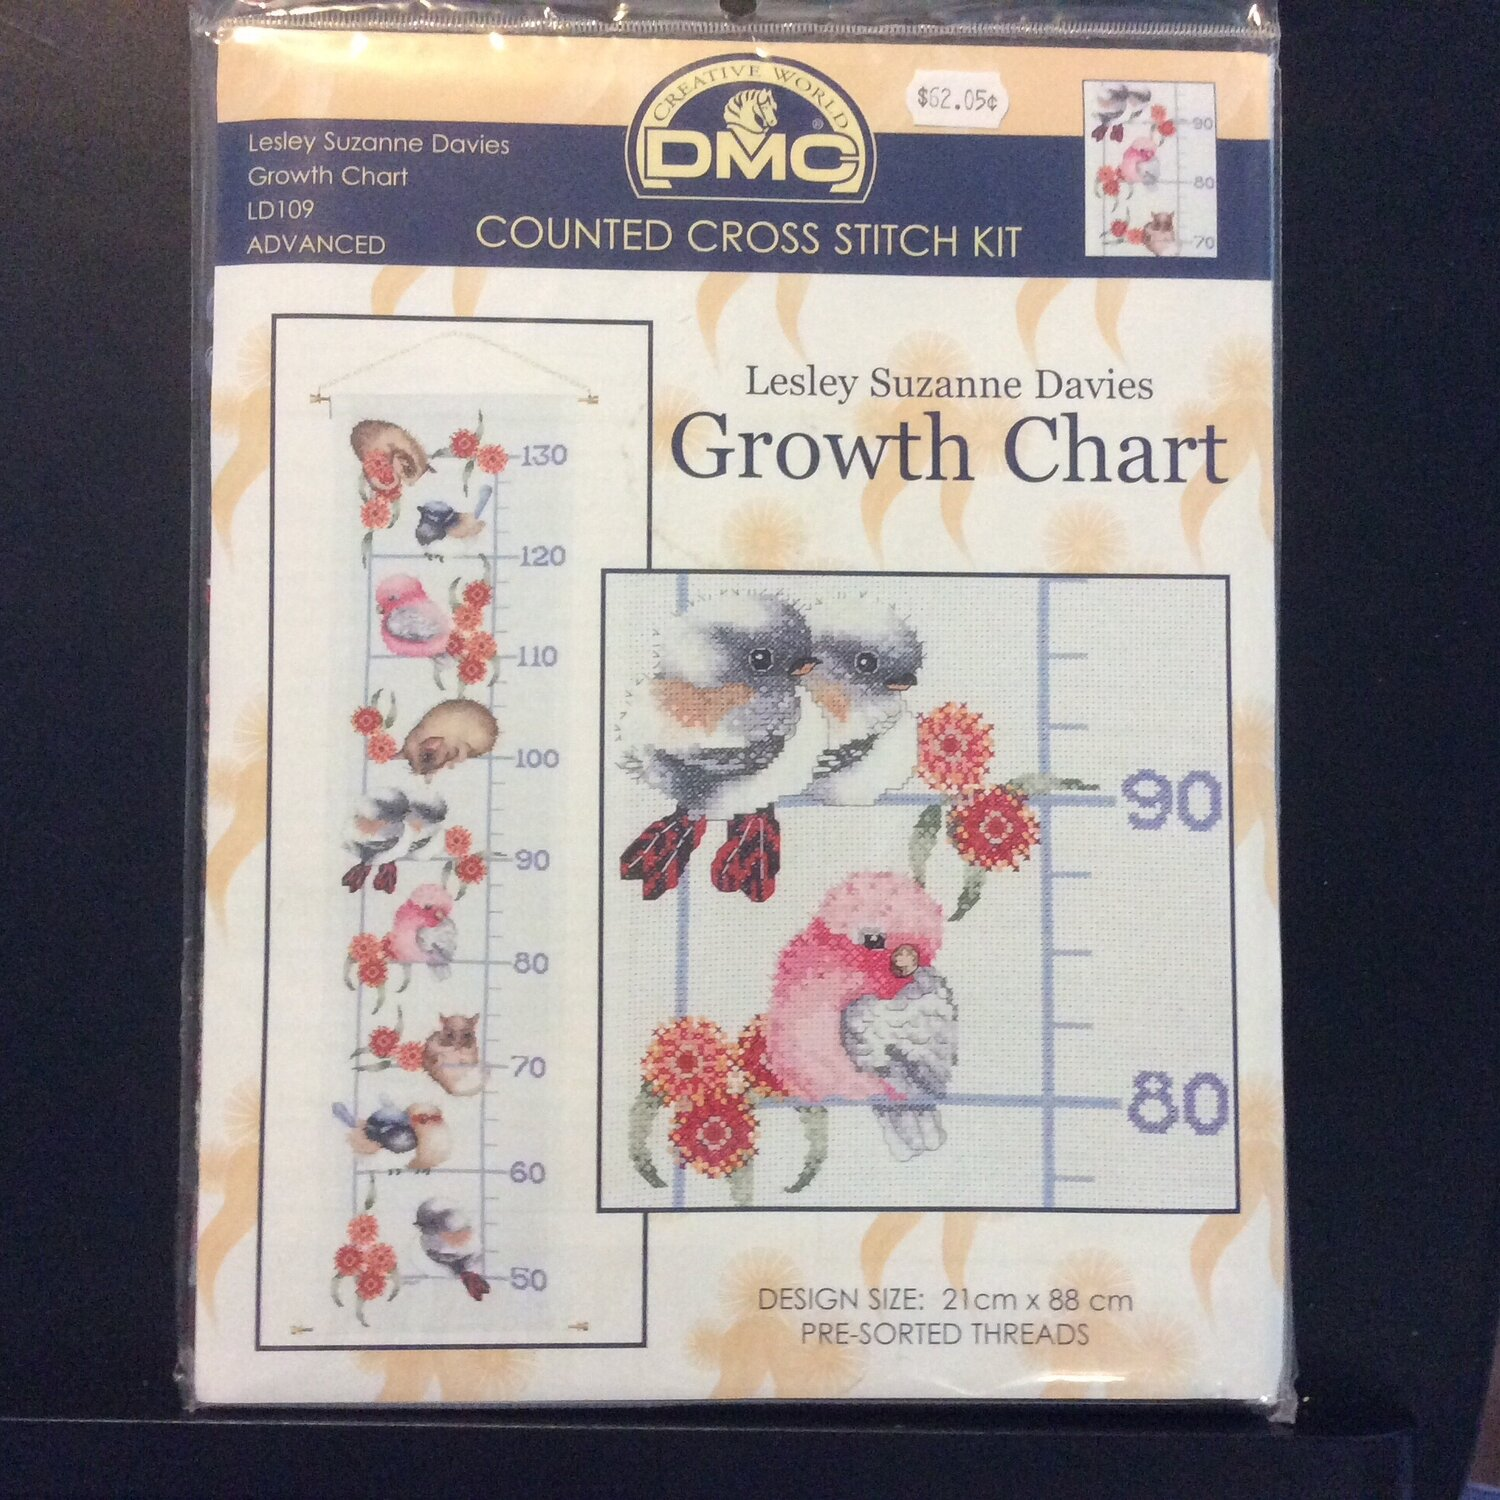 Australian Growth Sampler Counted Cross Stitch Kit 14cnt Design by Lesley Suzanne Davies Beutron